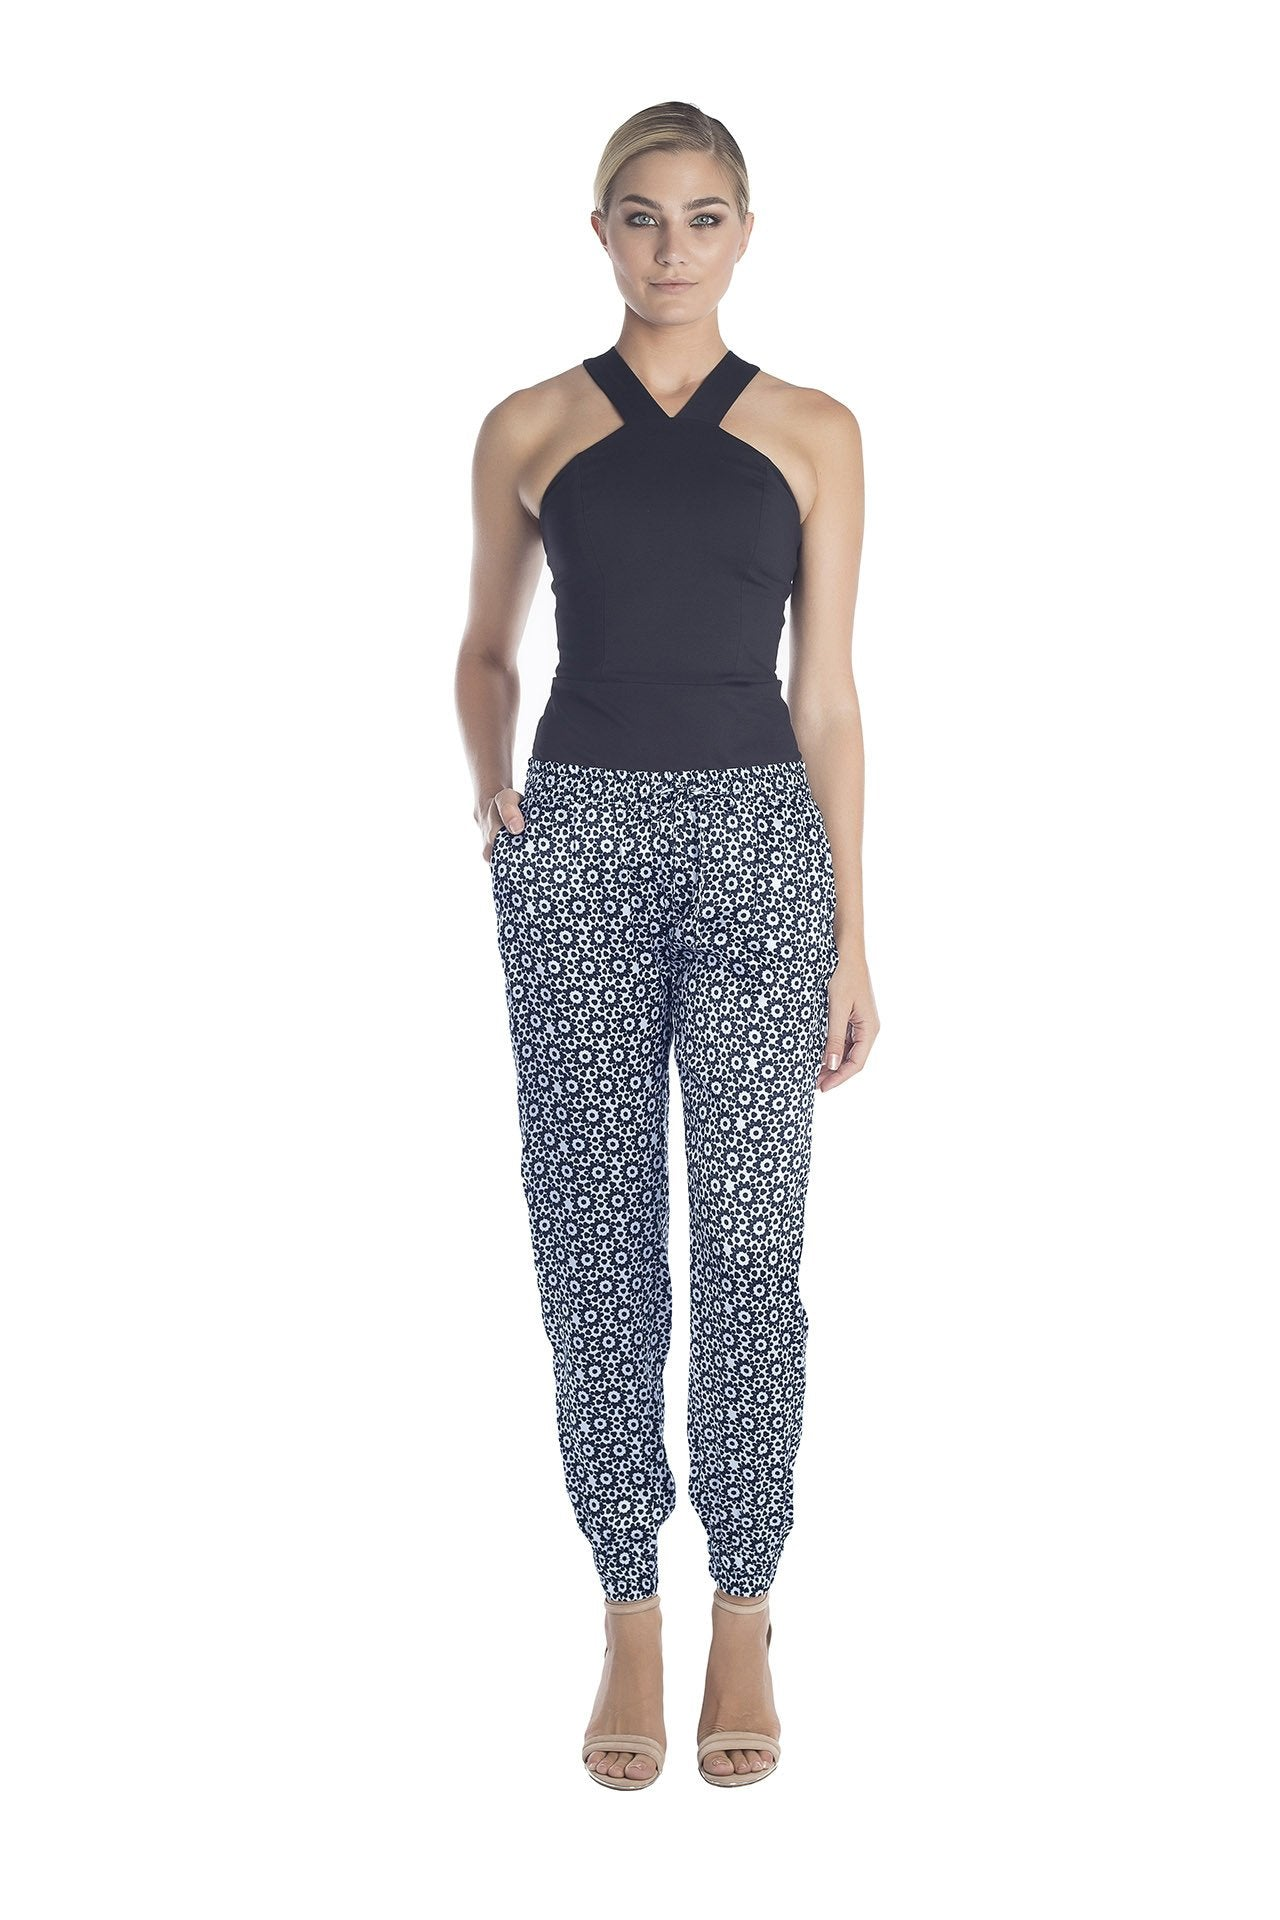 Front view of womens dressy track pants of a black and white mantra designed by artist John Zoller